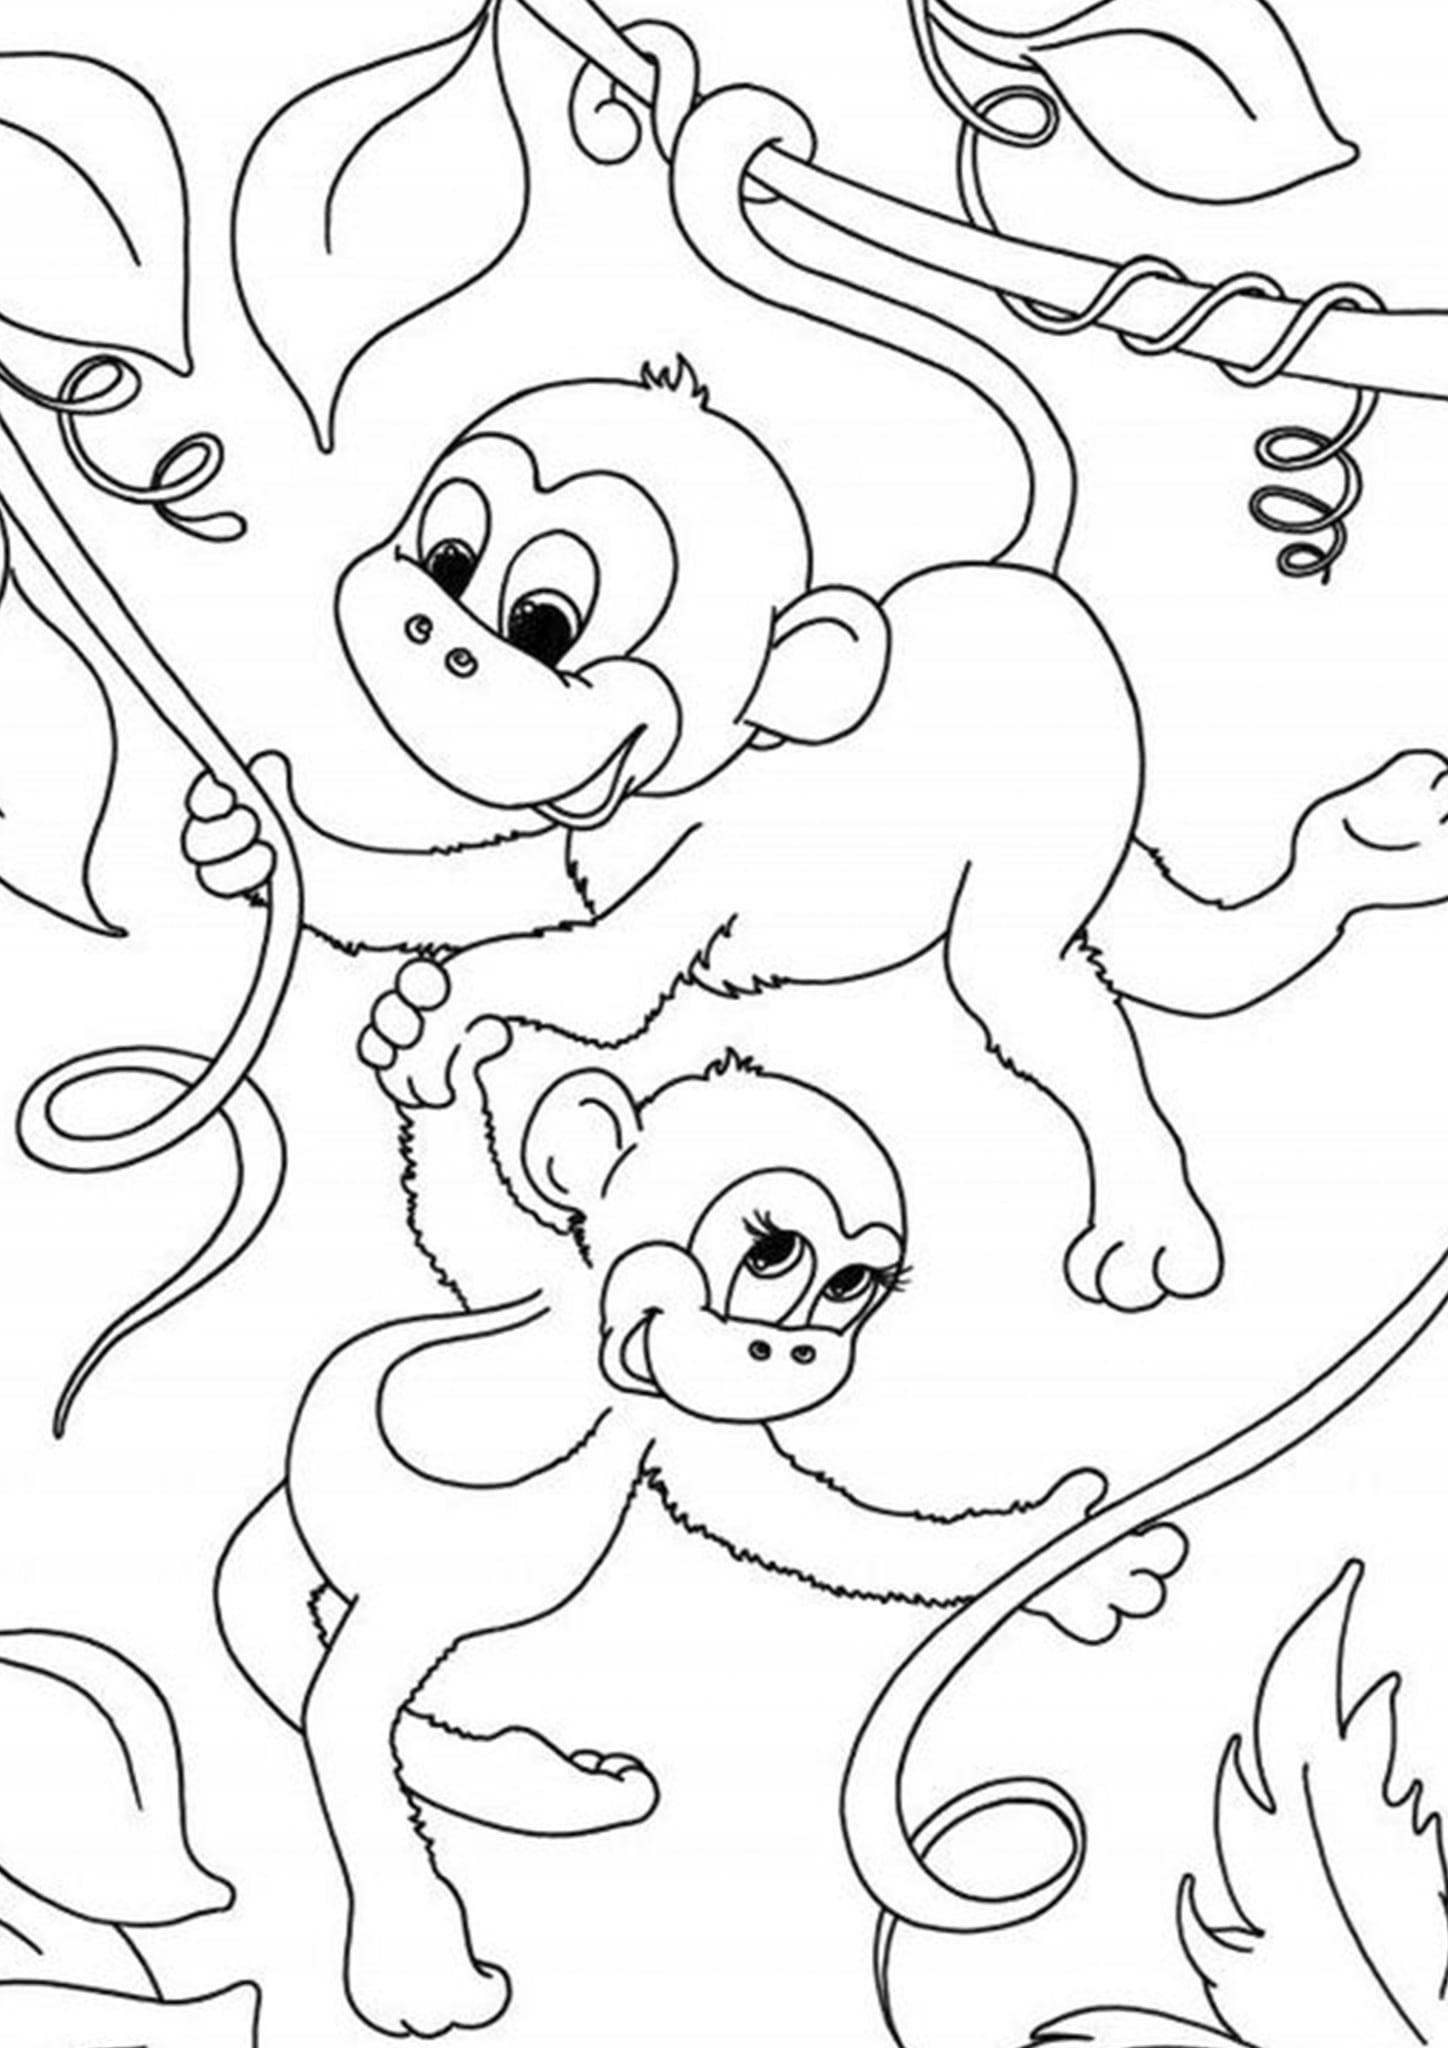 Monkey Coloring Pages Printable Beautiful Printable Monkey Clipart Coloring Pages Cartoon Craf Monkey Coloring Pages Animal Coloring Pages Cow Coloring Pages